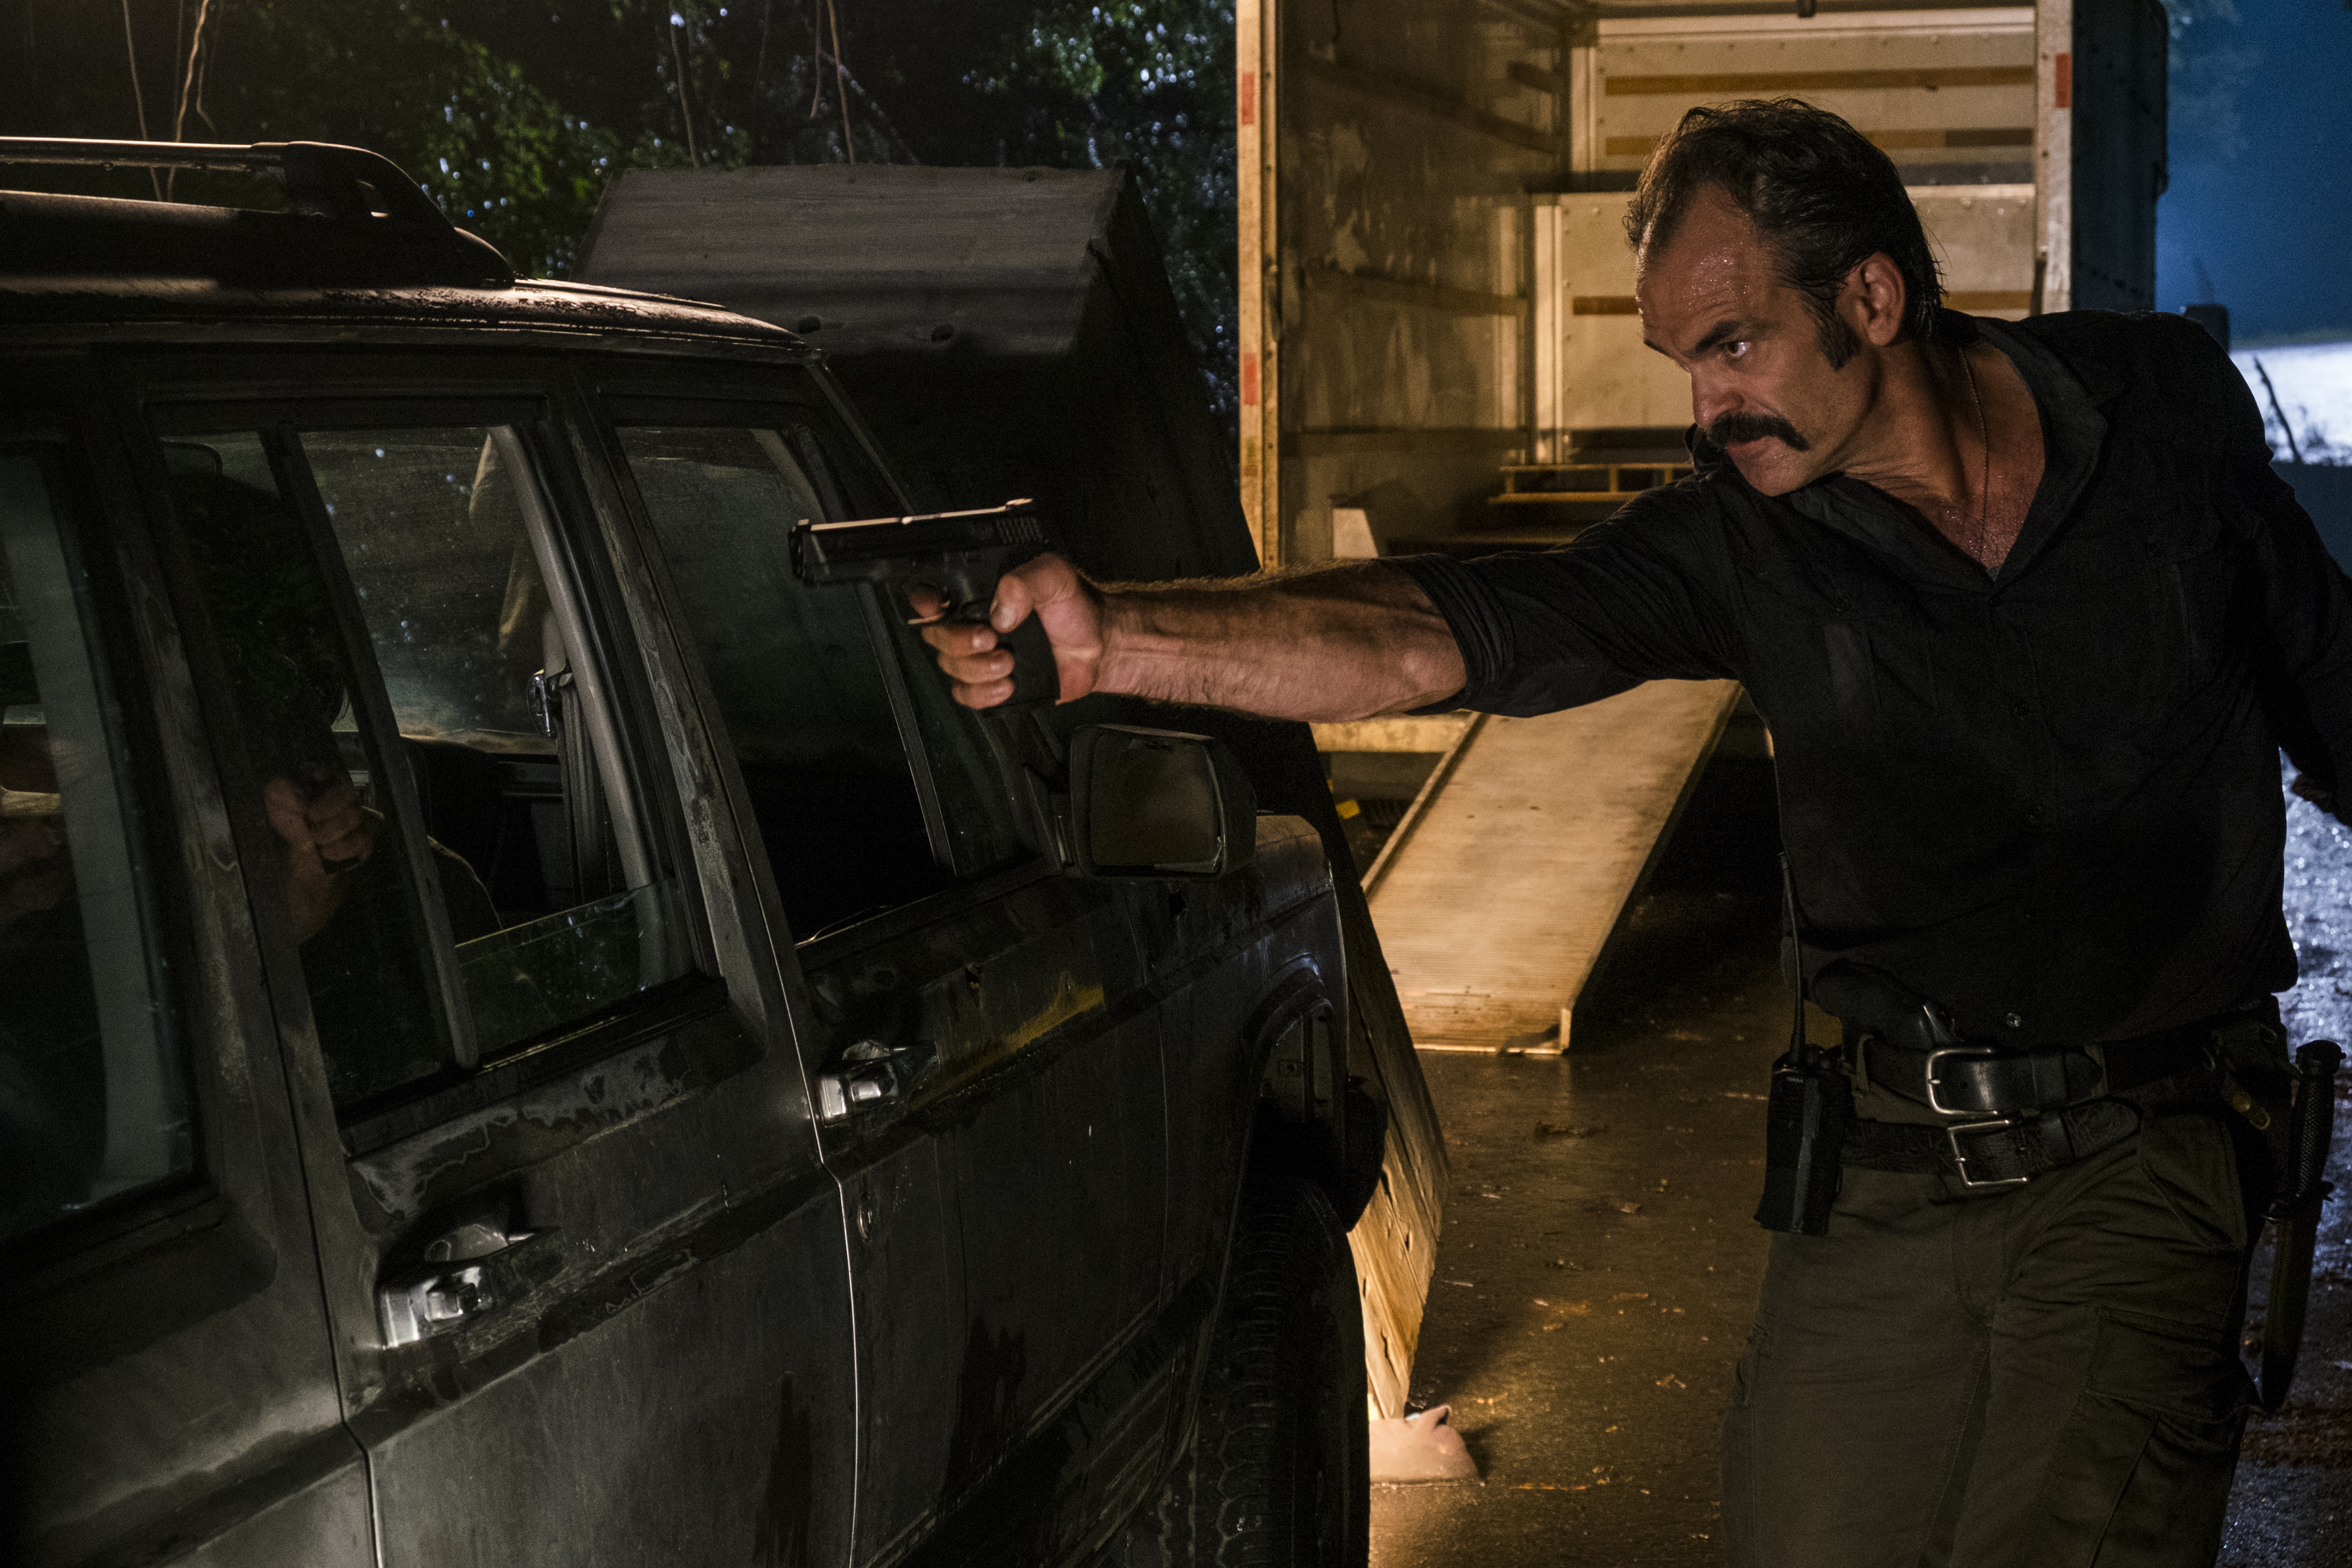 Simon (Steven Ogg) cherche à exterminer les colonies - The Walking Dead Saison 8 Épisode 8 - Crédit photo: Gene Page/AMC